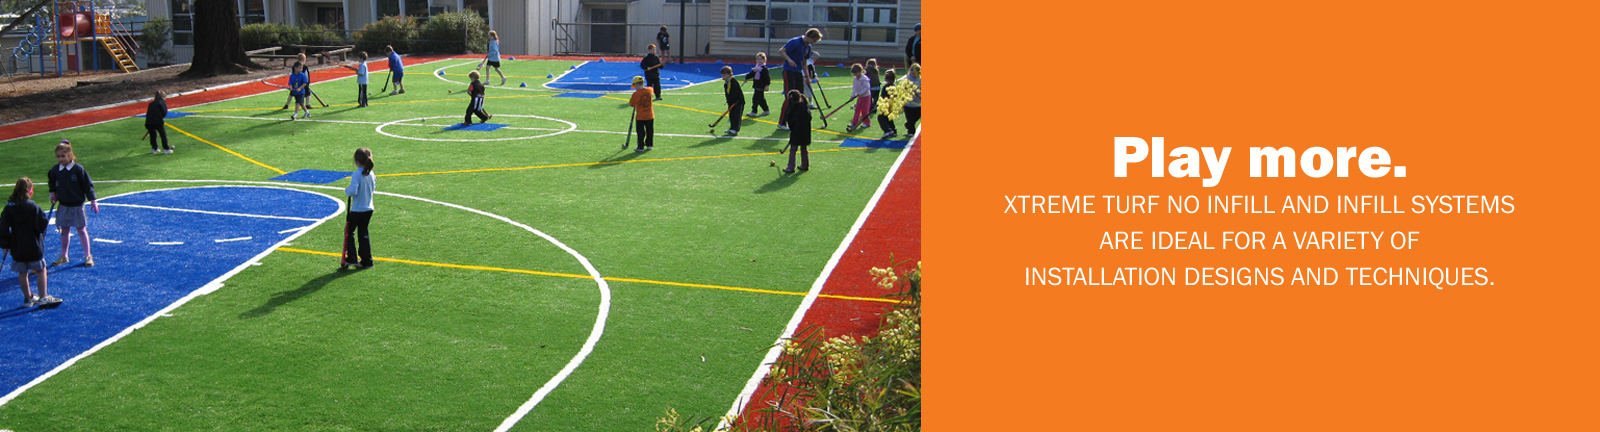 Xtreme Turf offers non-infilled systems ideal for tennis, indoor facilities and more.